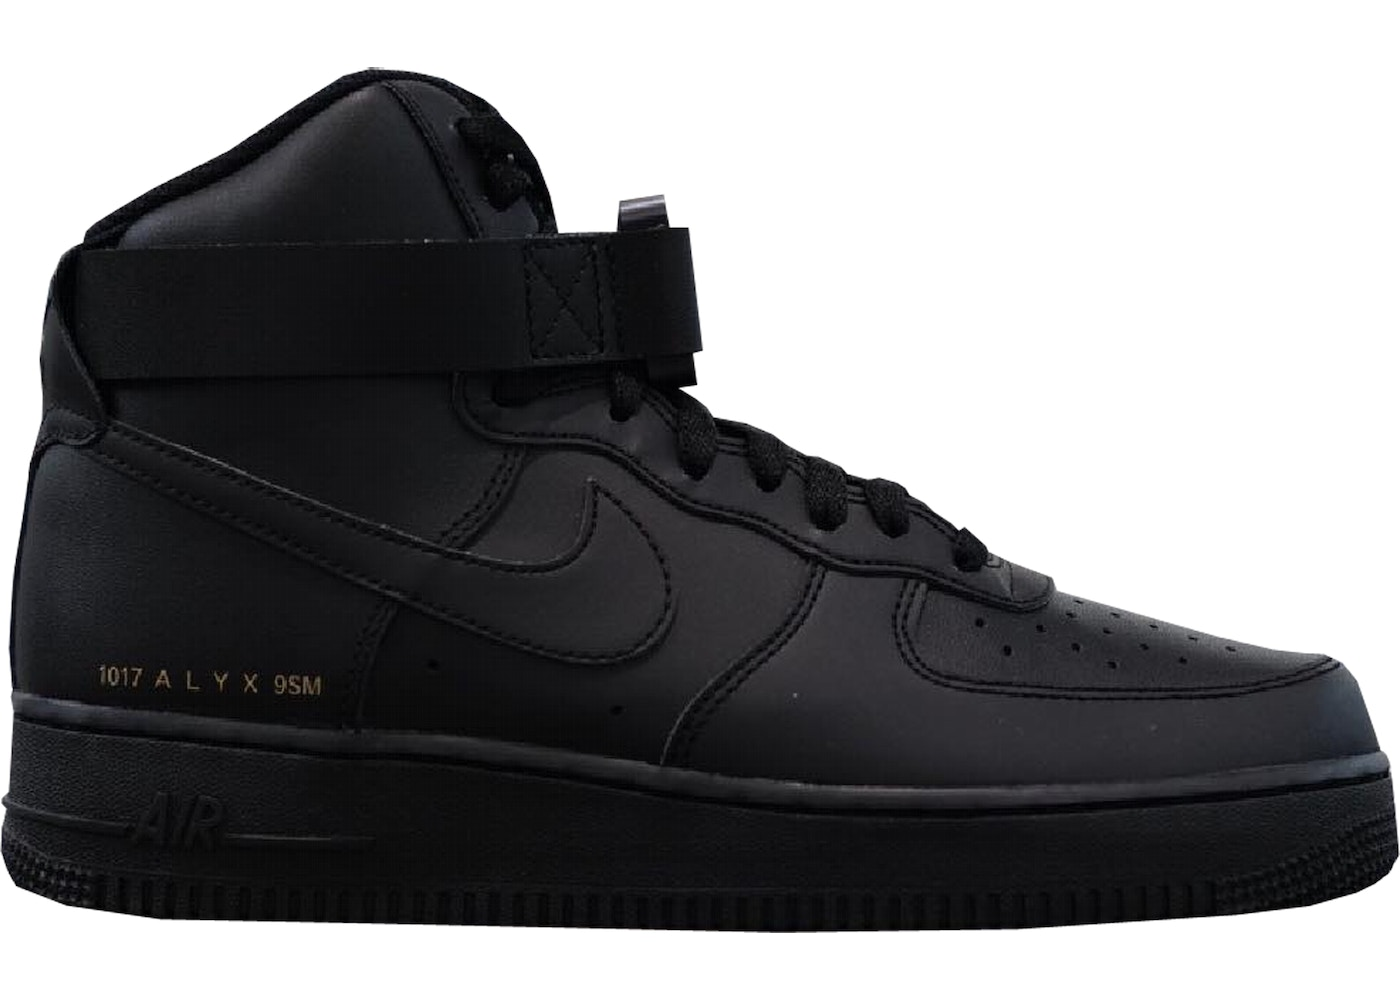 ALYX x Nike Air Force 1 High Black For Sale